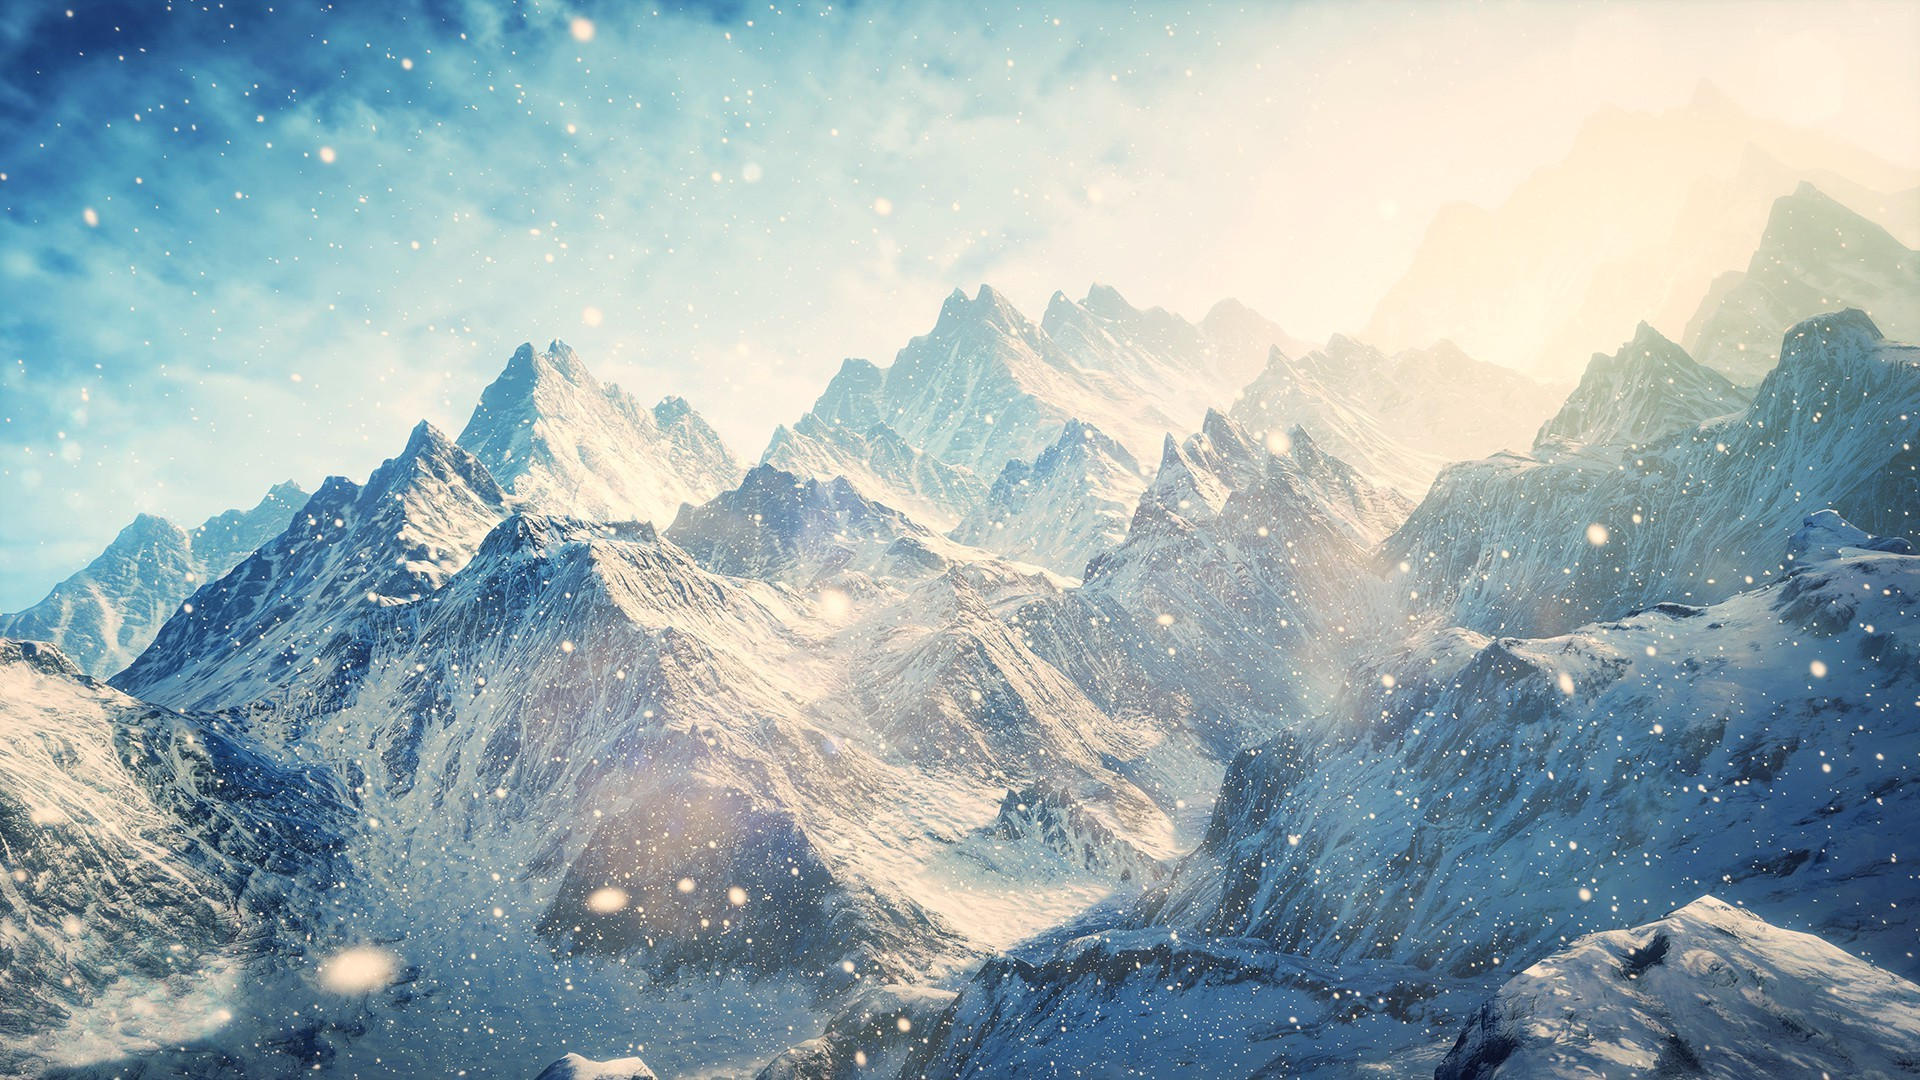 snow-mountain-wallpaper-hd